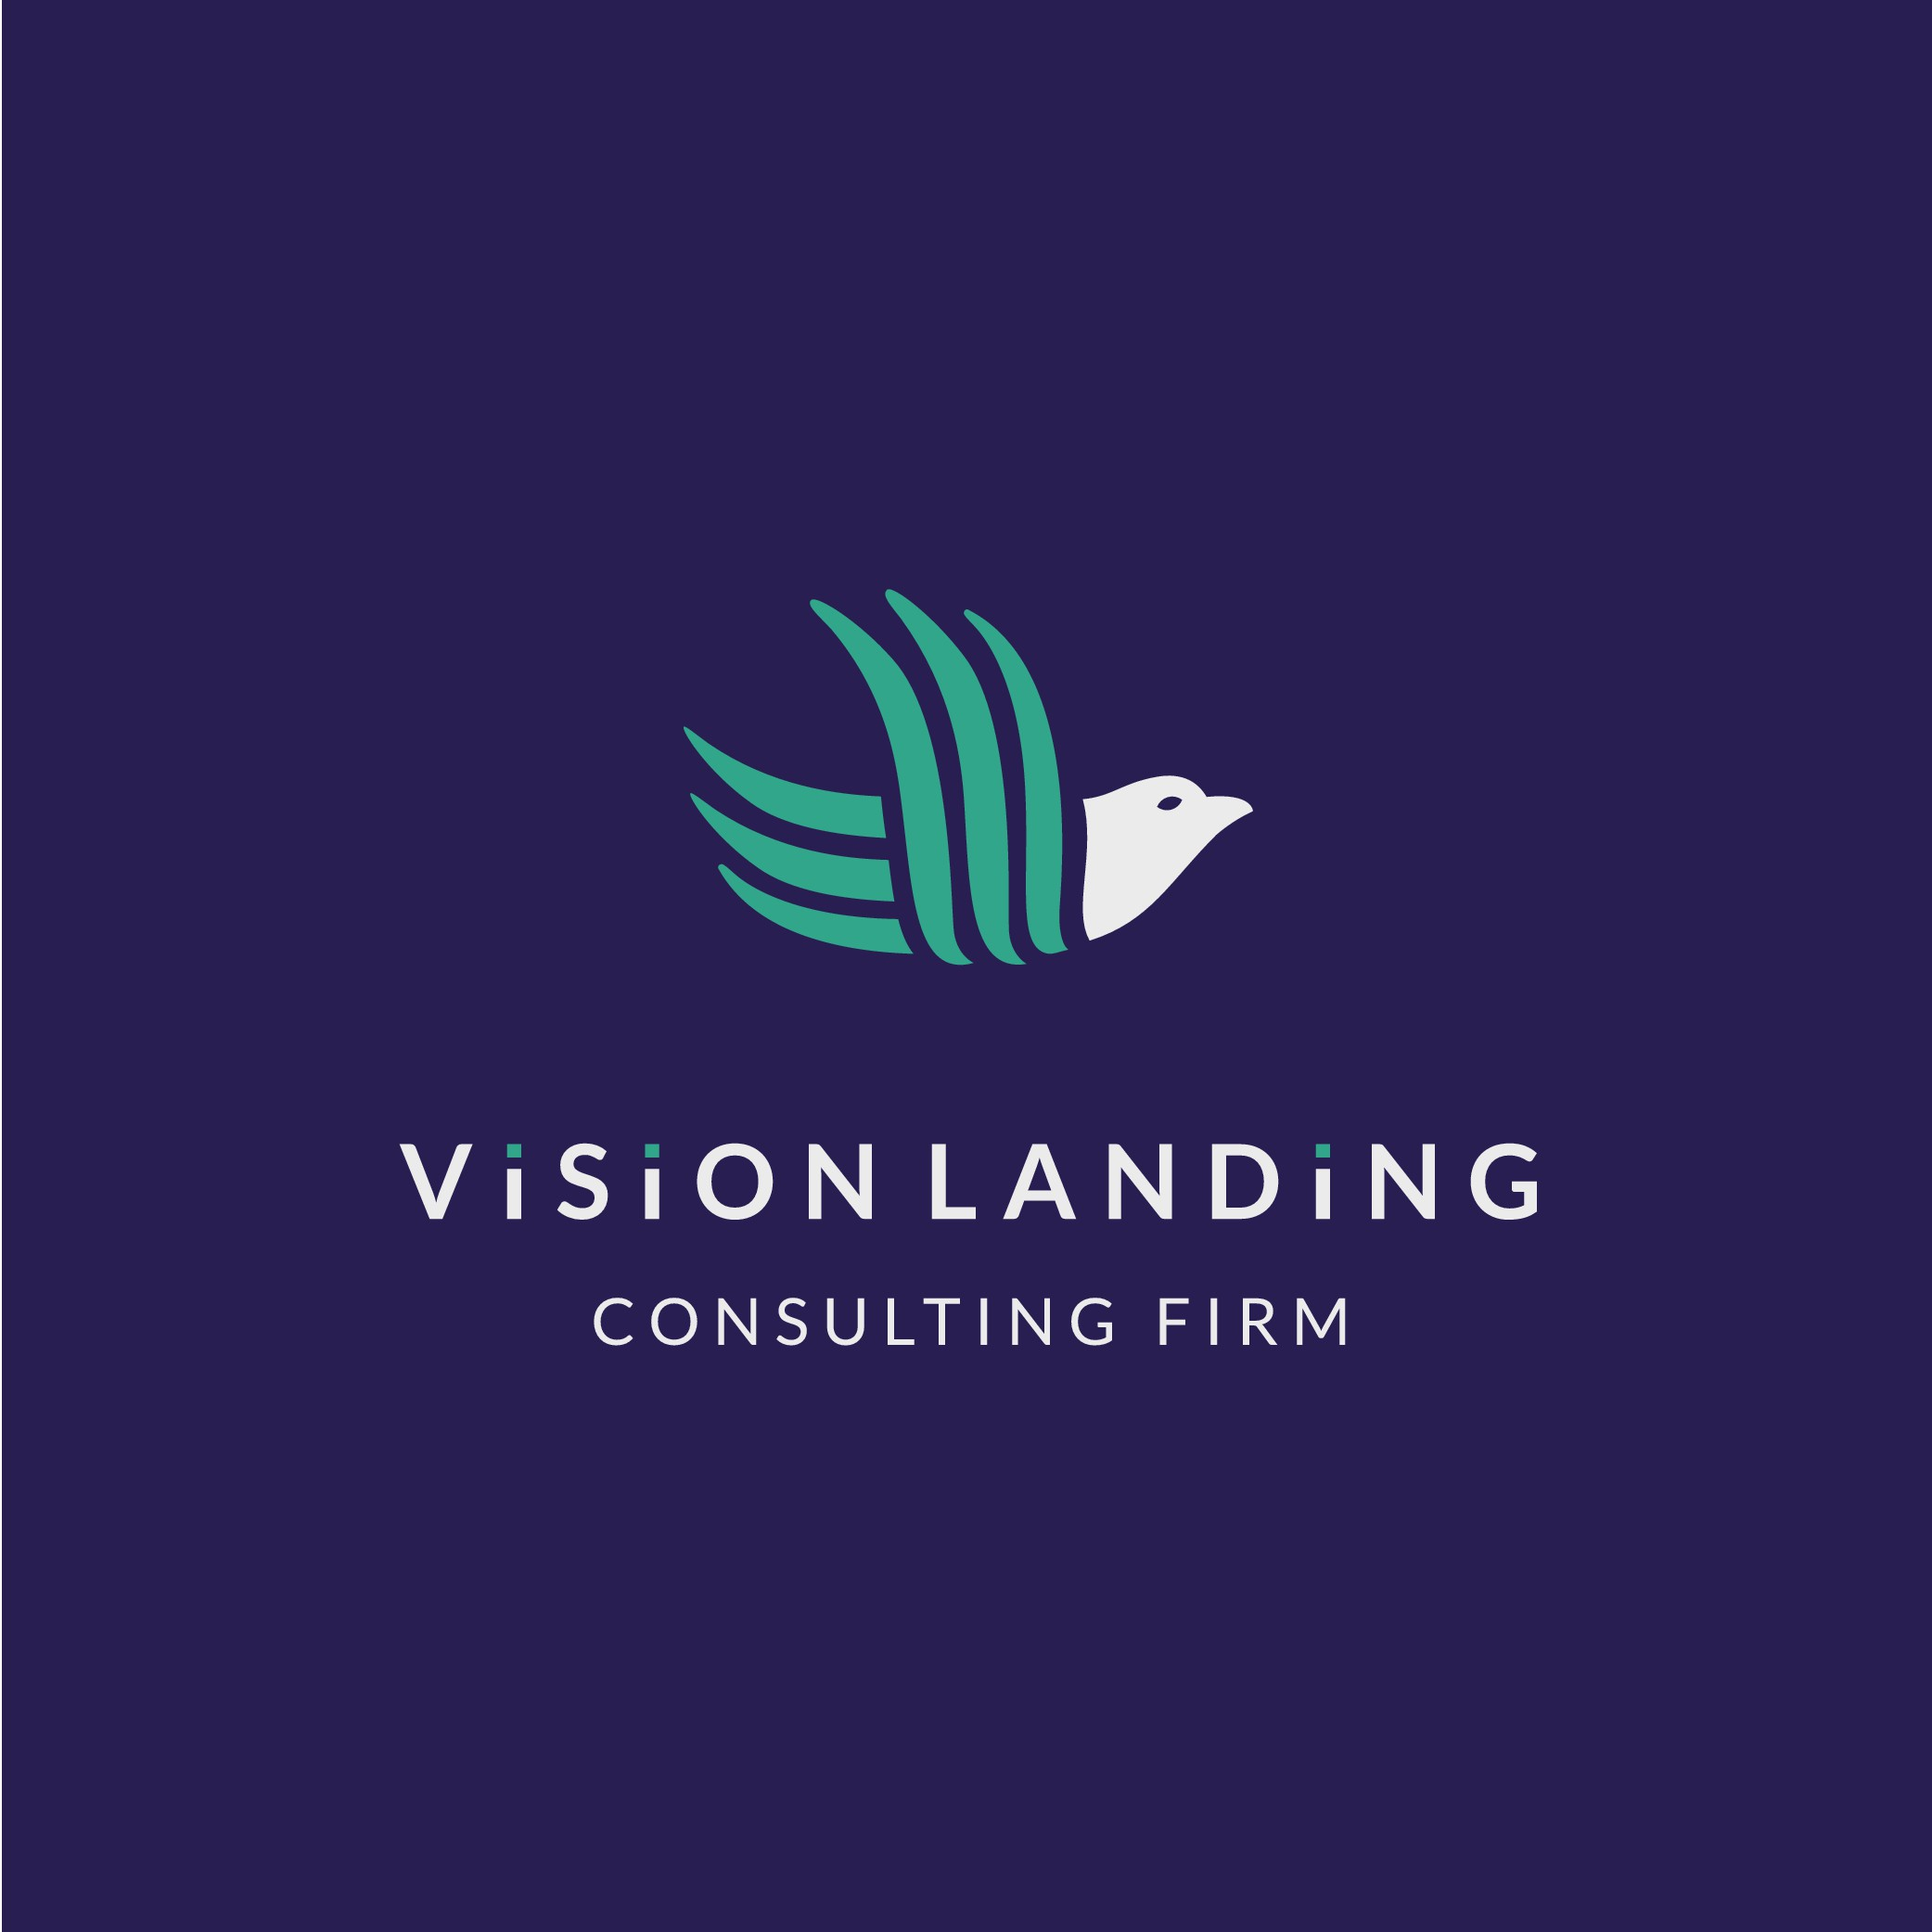 Vision Landig. Consulting firm